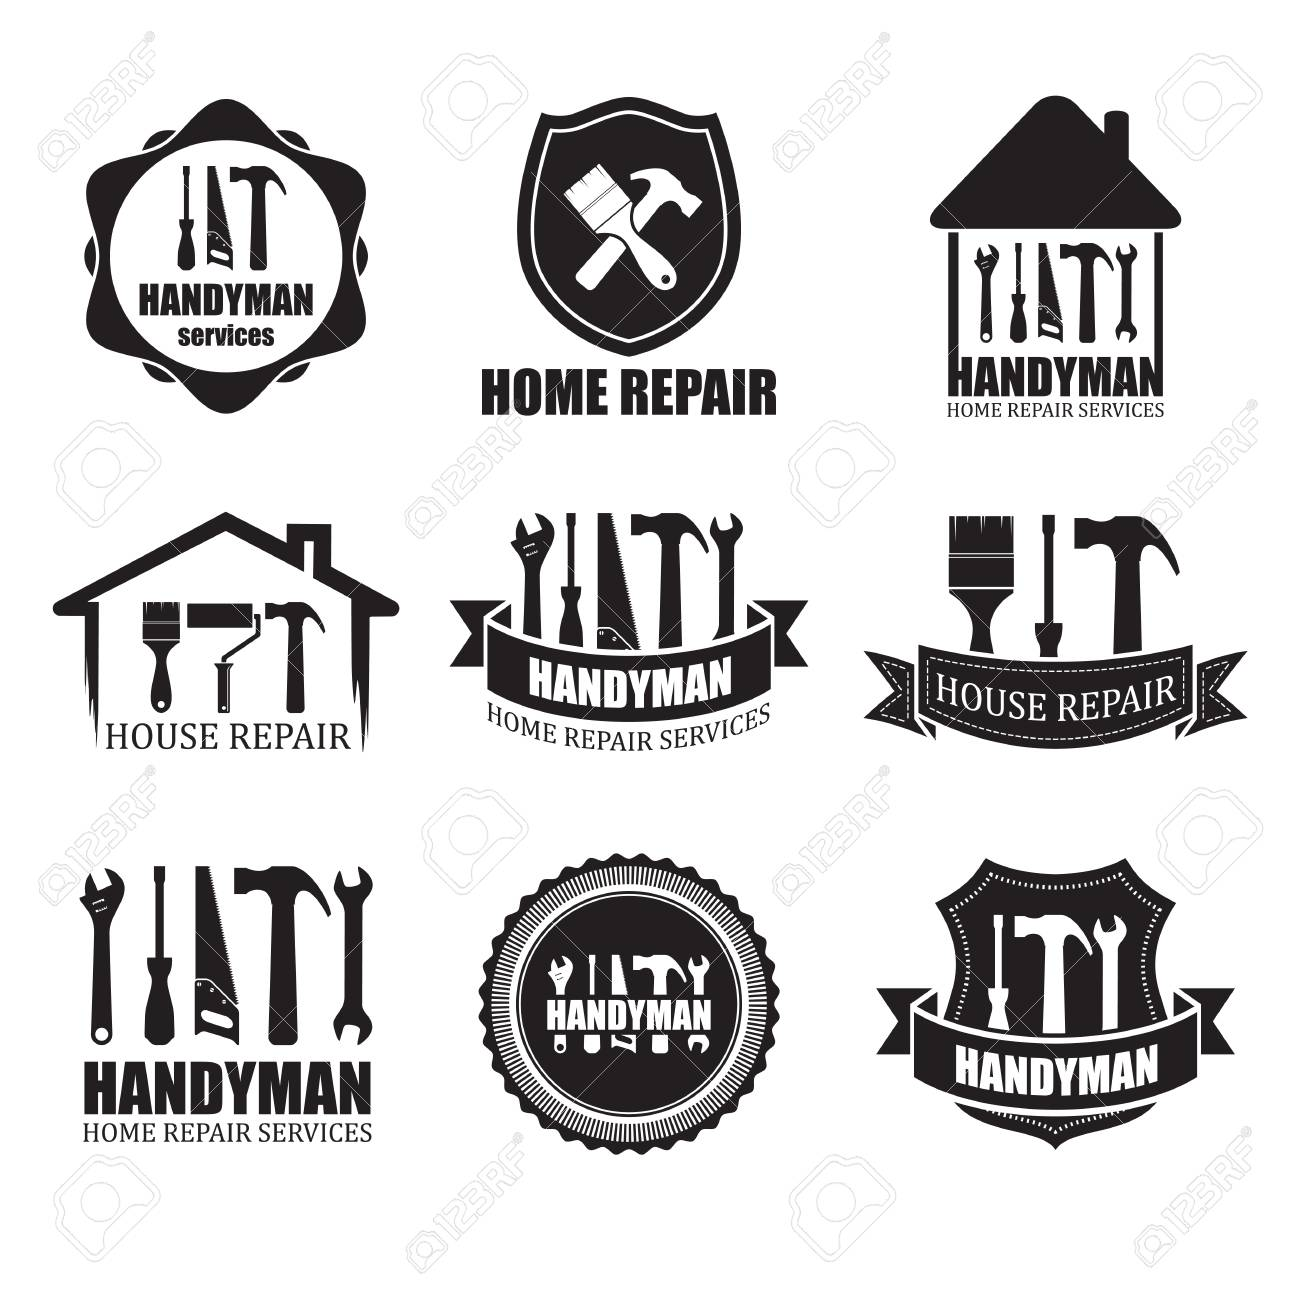 Set of different handyman services icons, isolated on white background. For logo, label or banner - 83014052